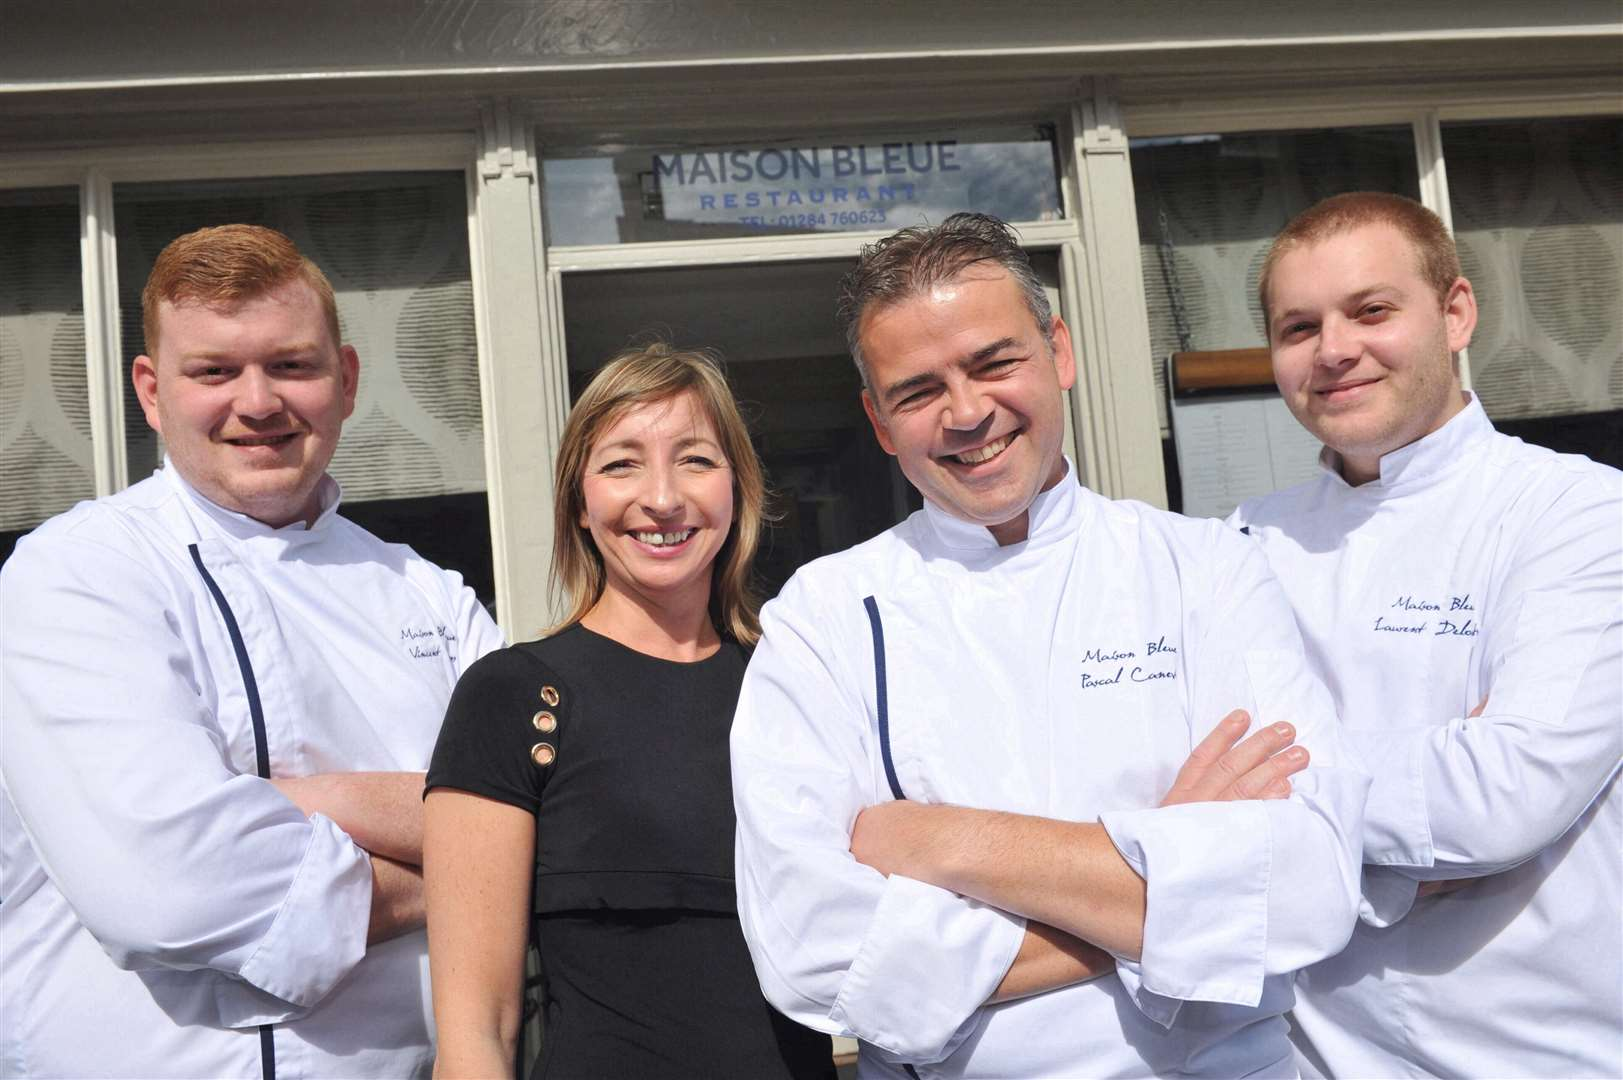 Vincent Gross: sous chef, Karine Canevet: patron, Pascal Canevet: chef patron, Laurent Deloutre: junior sous chef (3477255)